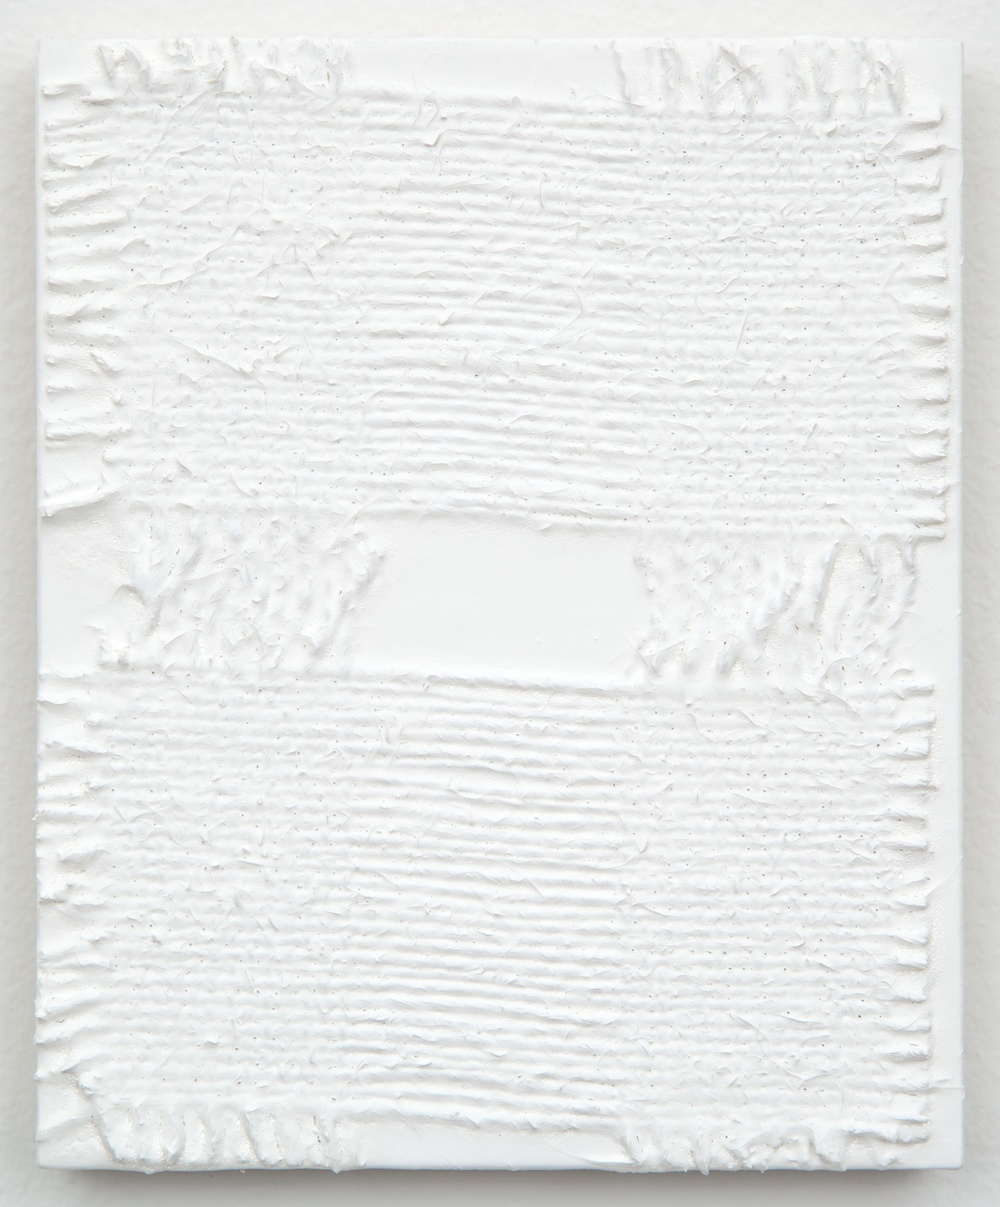 "Michelle Grabner Untitled 2013 Burlap and gesso on panel 6"" x 5"" MGrab365"